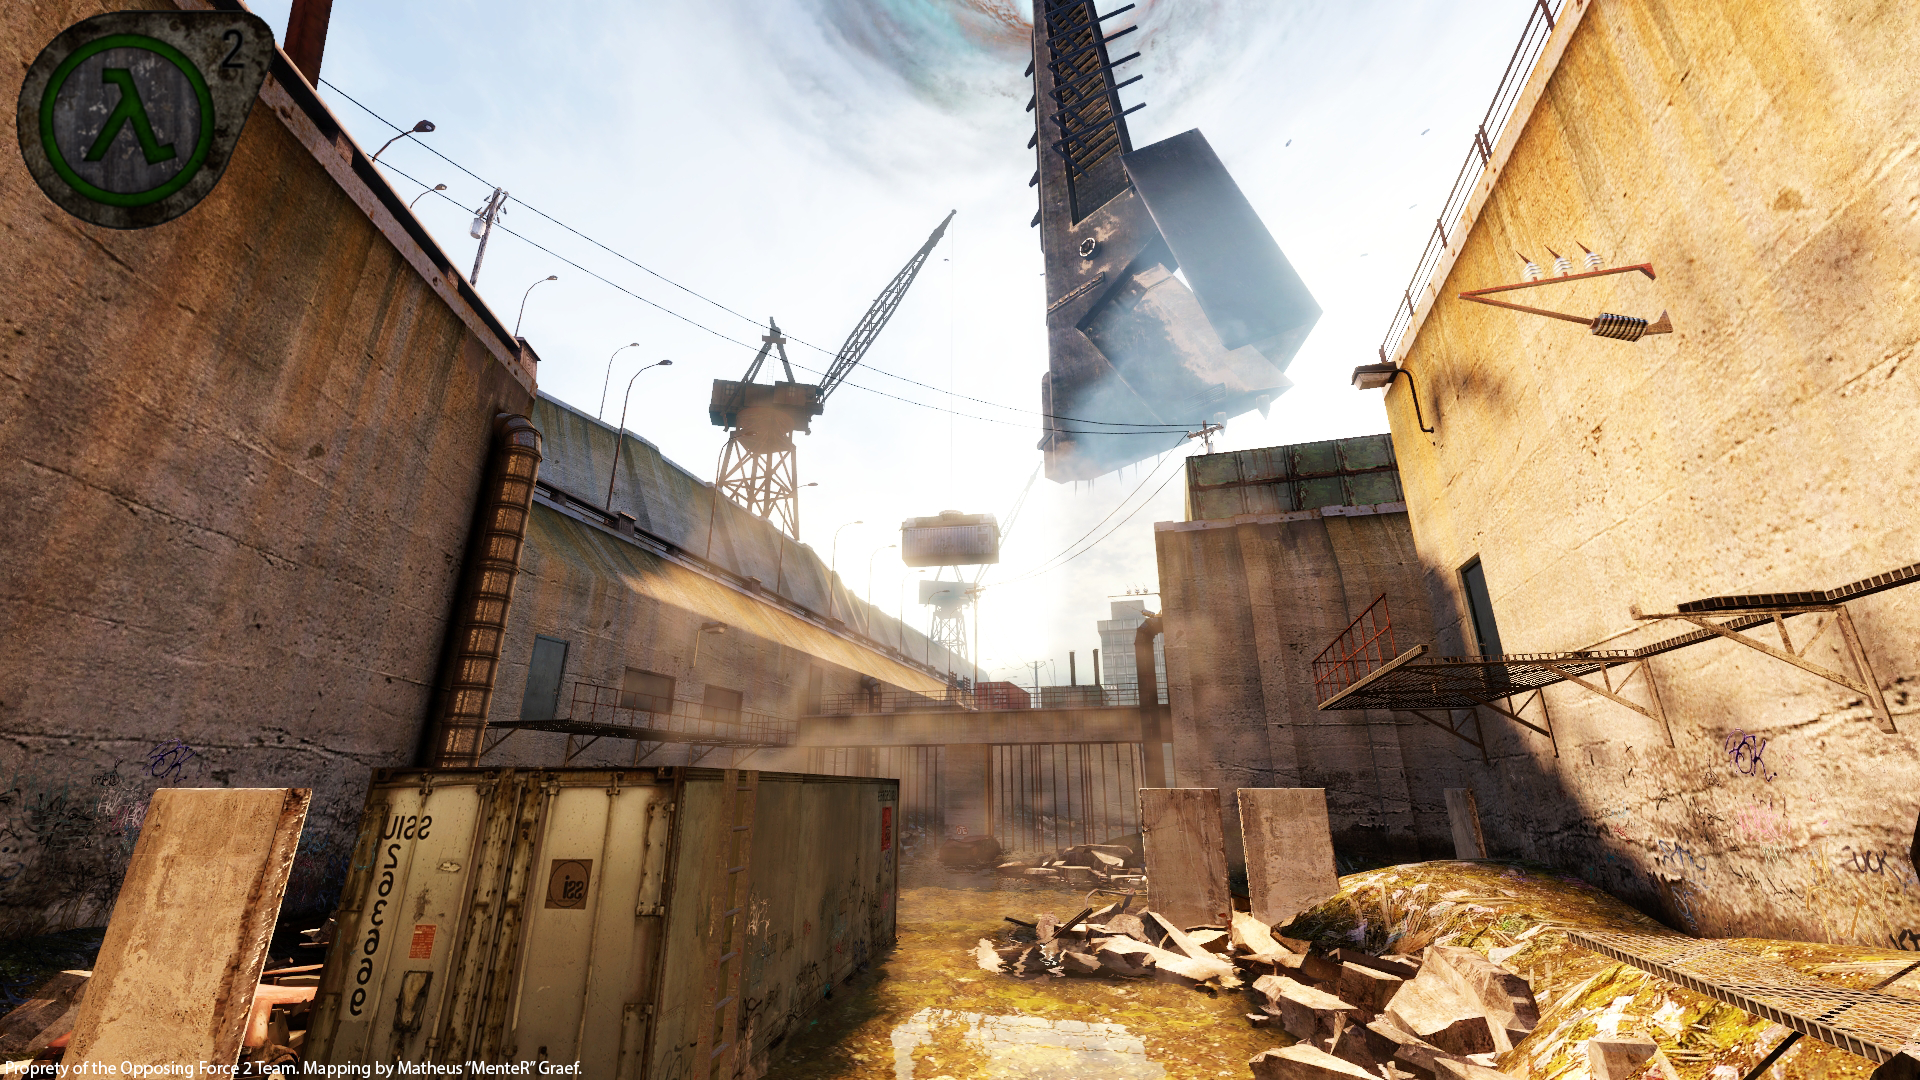 OF2 - Urban Chaos (Canals) image - Opposing Force 2 mod for